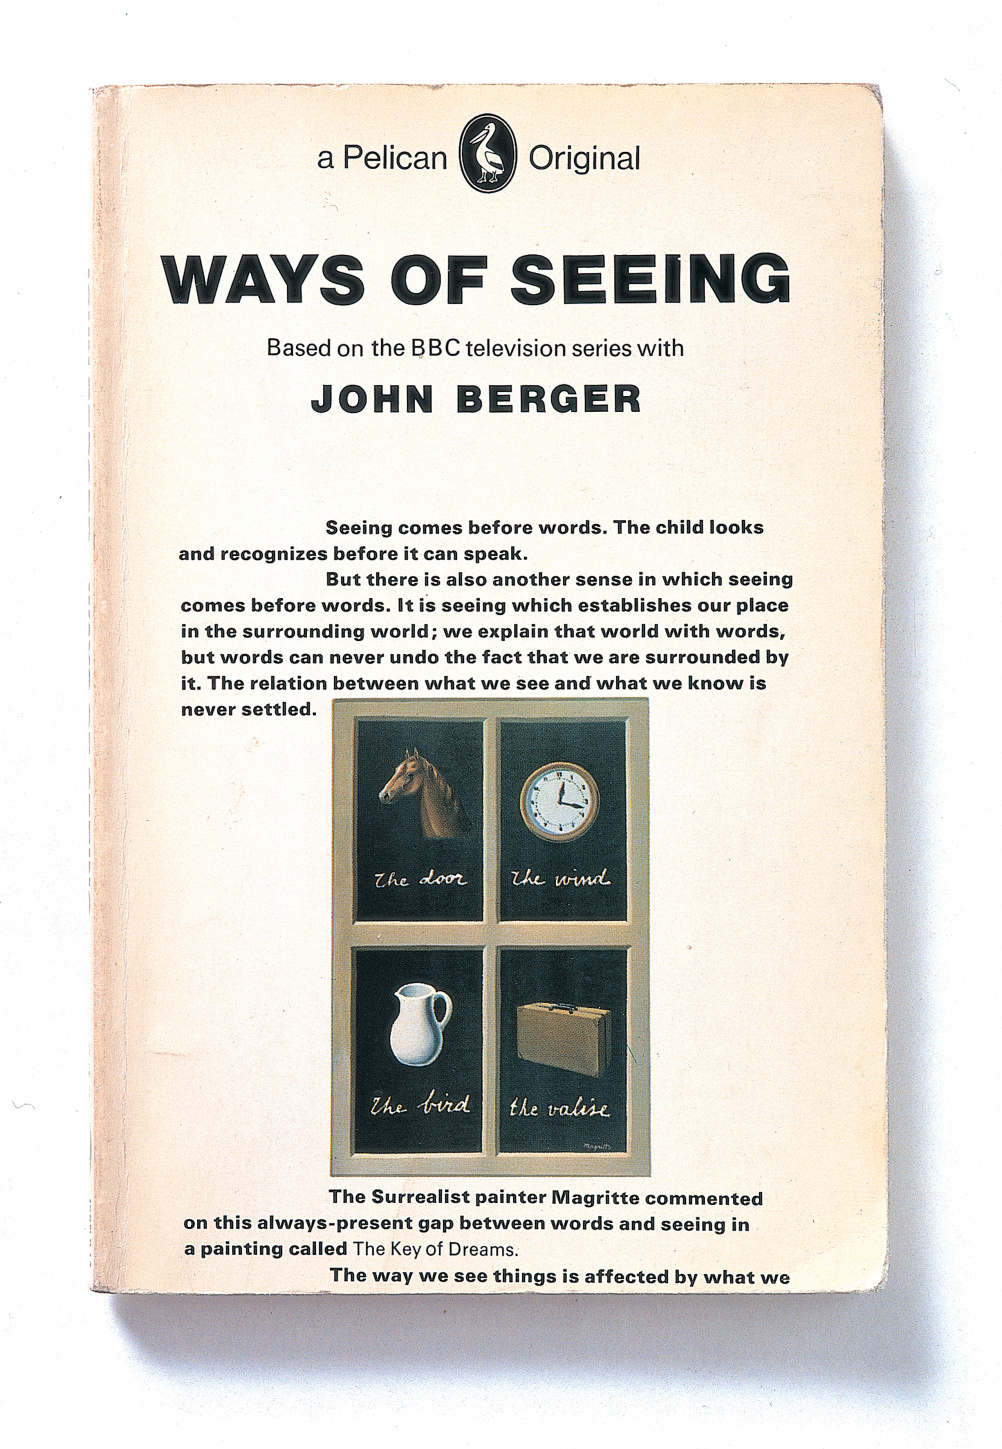 Book cover for Ways of Seeing by John Berger. Design by Richard Hollis. Published by BBC and Penguin Books, London, 1972.